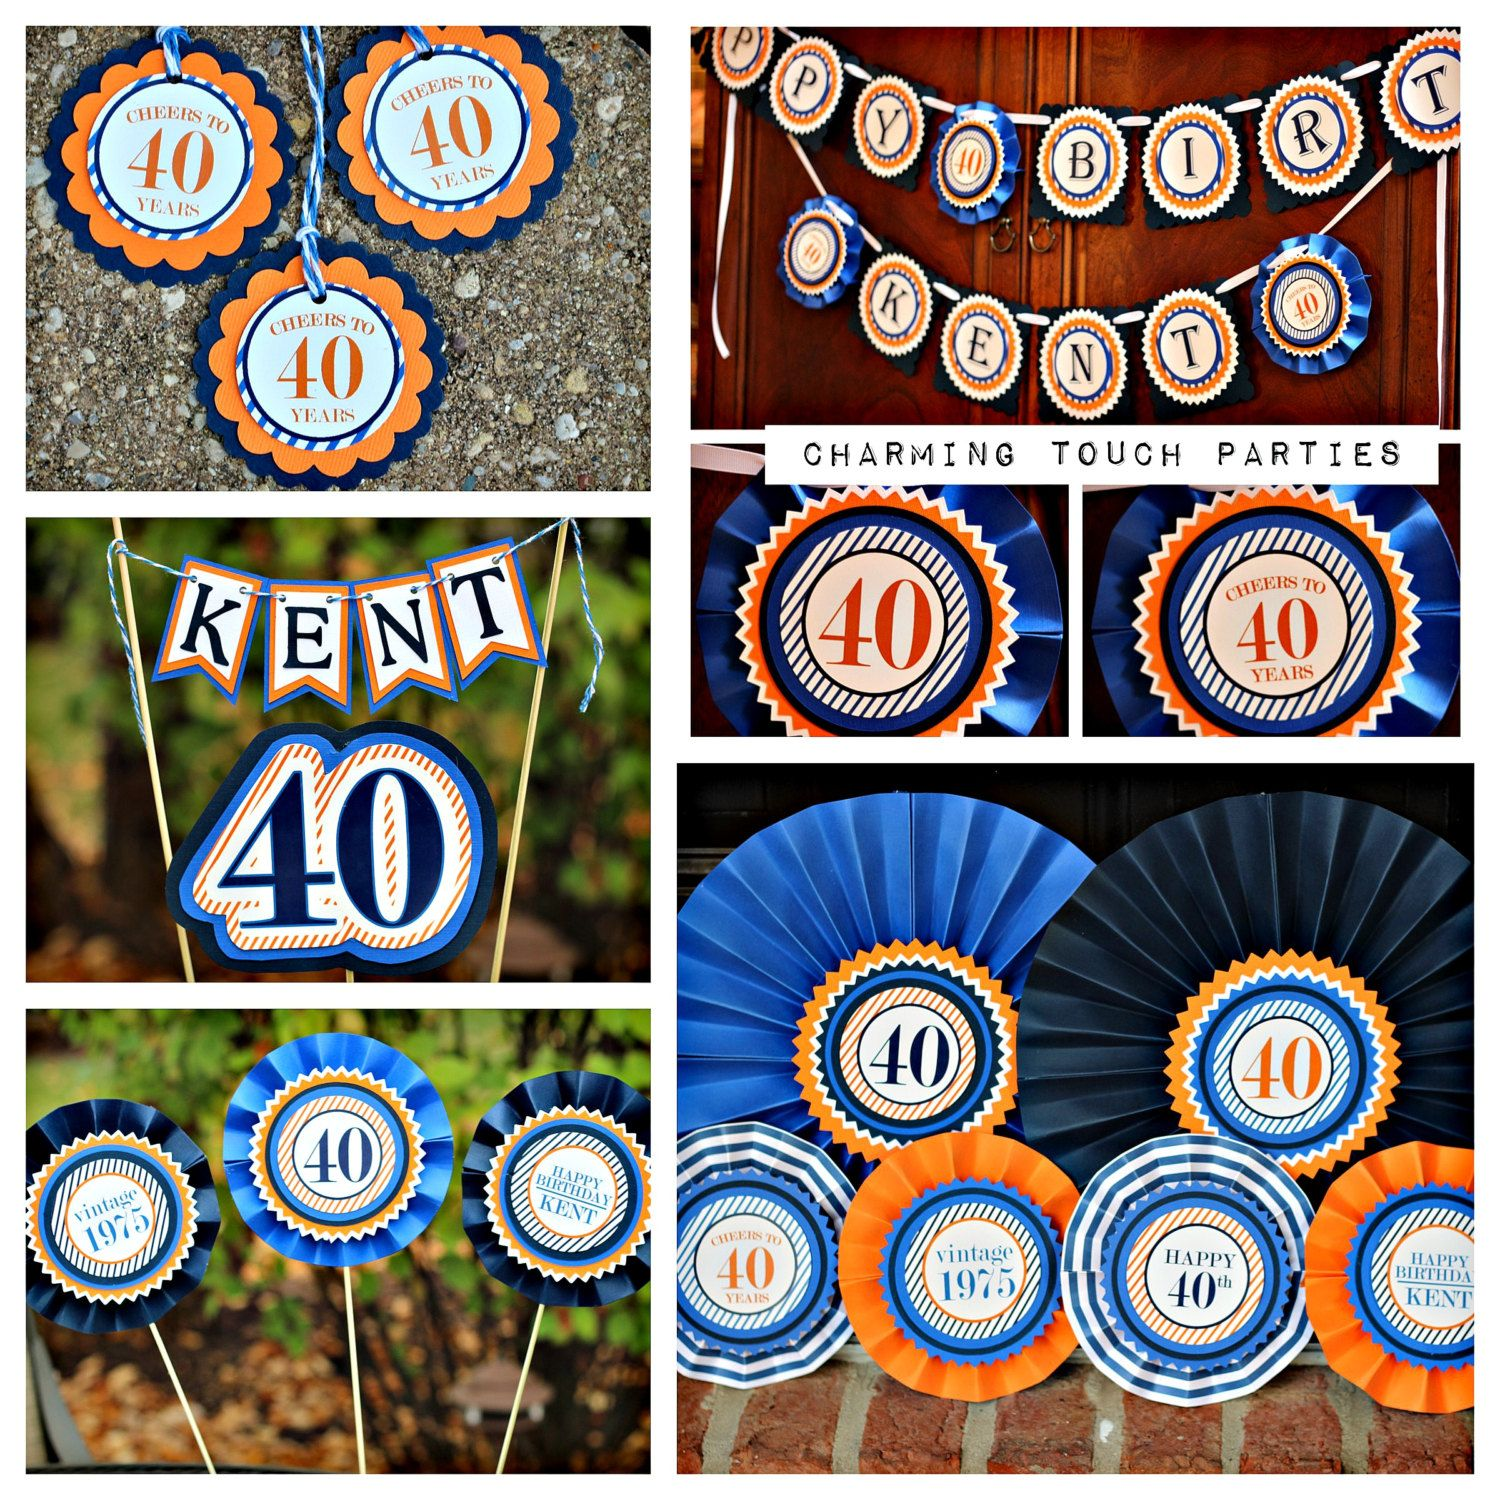 Masculine 40th Birthday Party Decor 5 Piece Blue And Orange Decorations Fully Assembled Customizable By CharmingTouchParties On Etsy